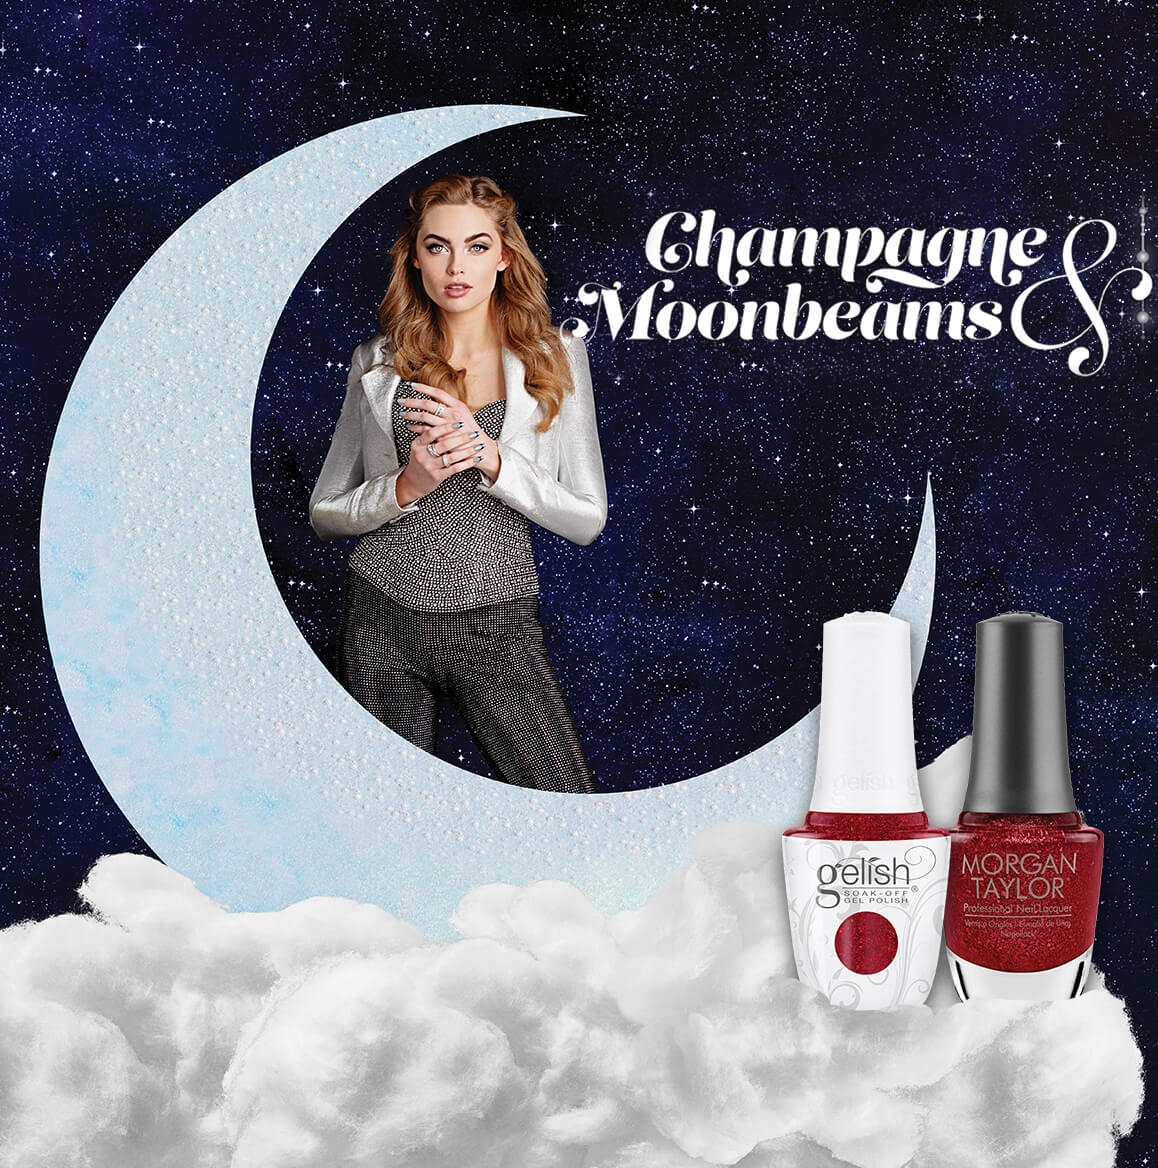 Champagne & Moonbeams -news